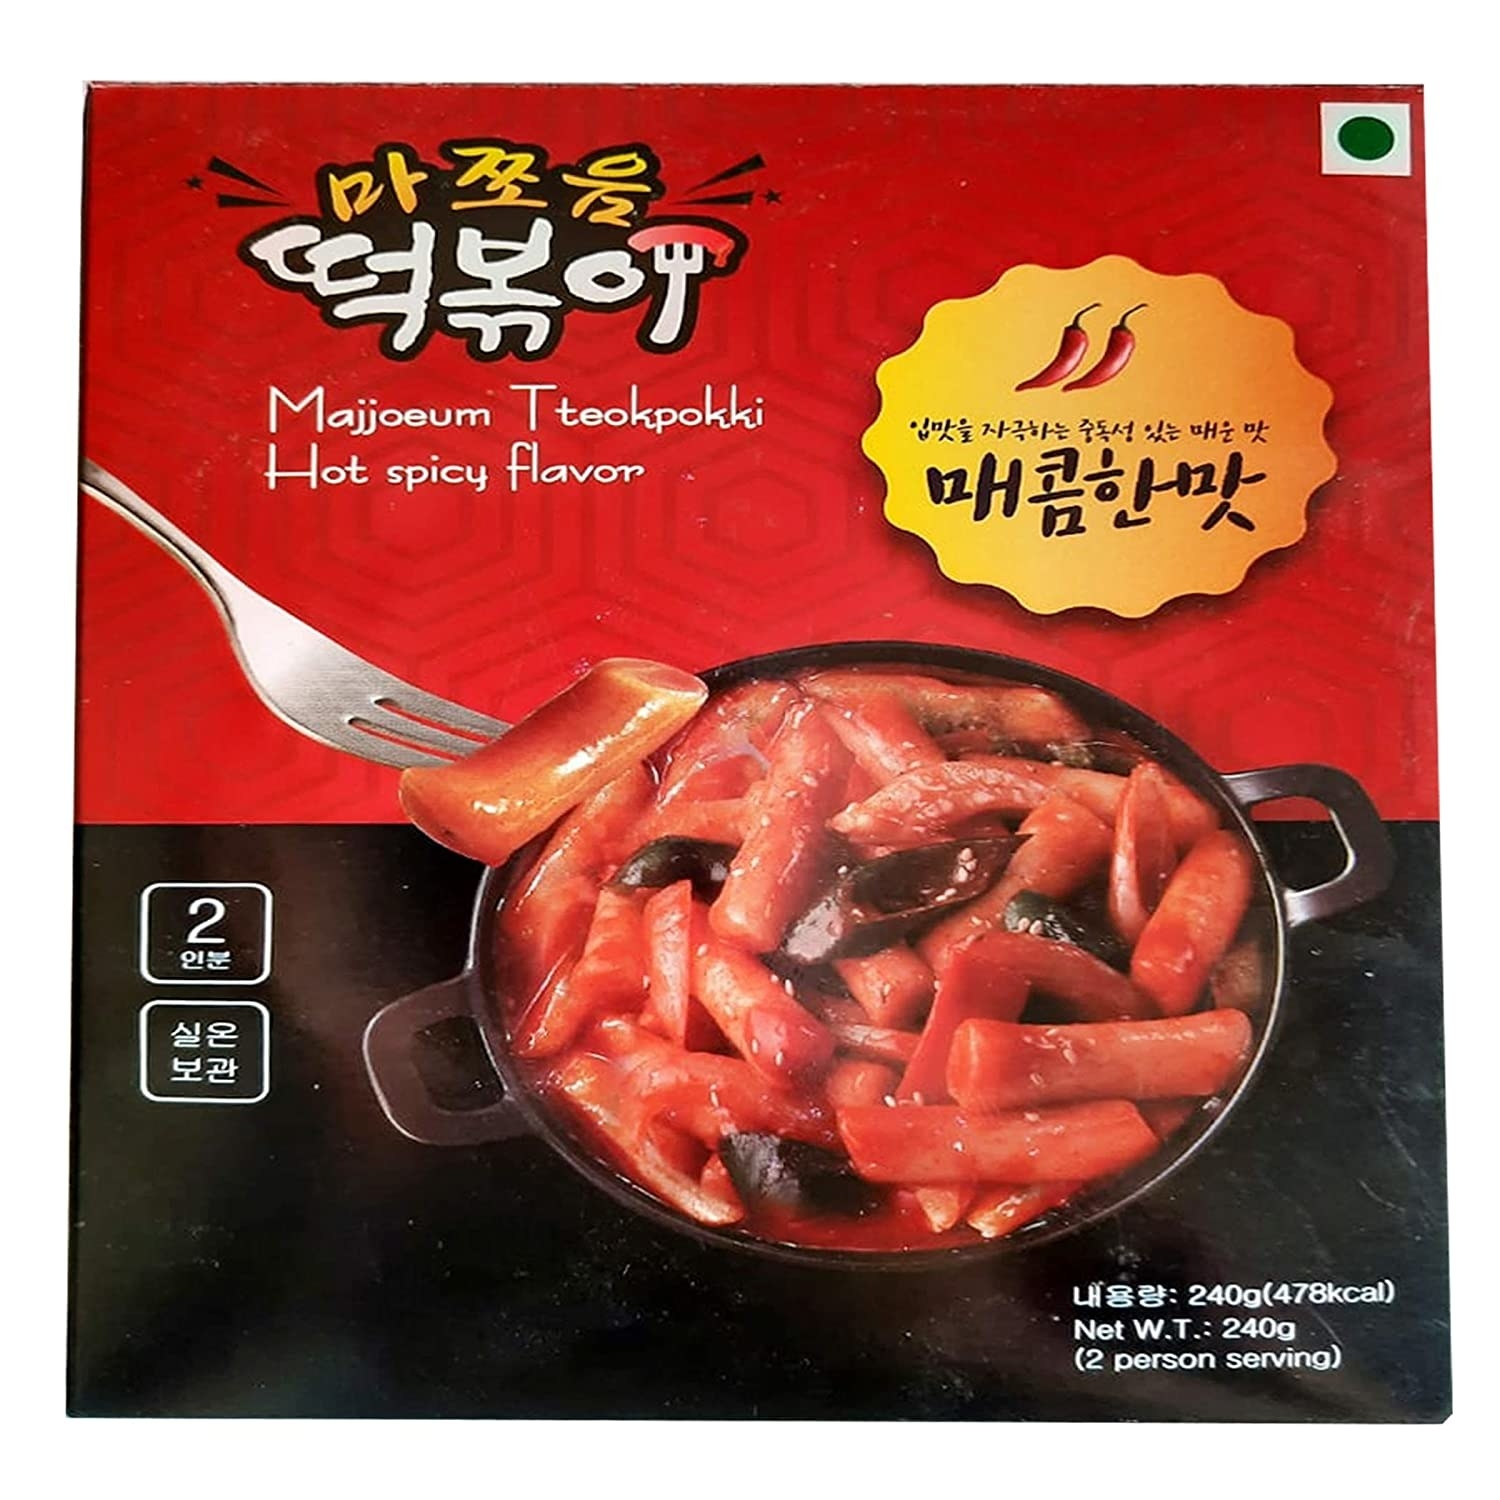 A packet of ready-to-eat Tteokbokki in a hot spicy flavour.